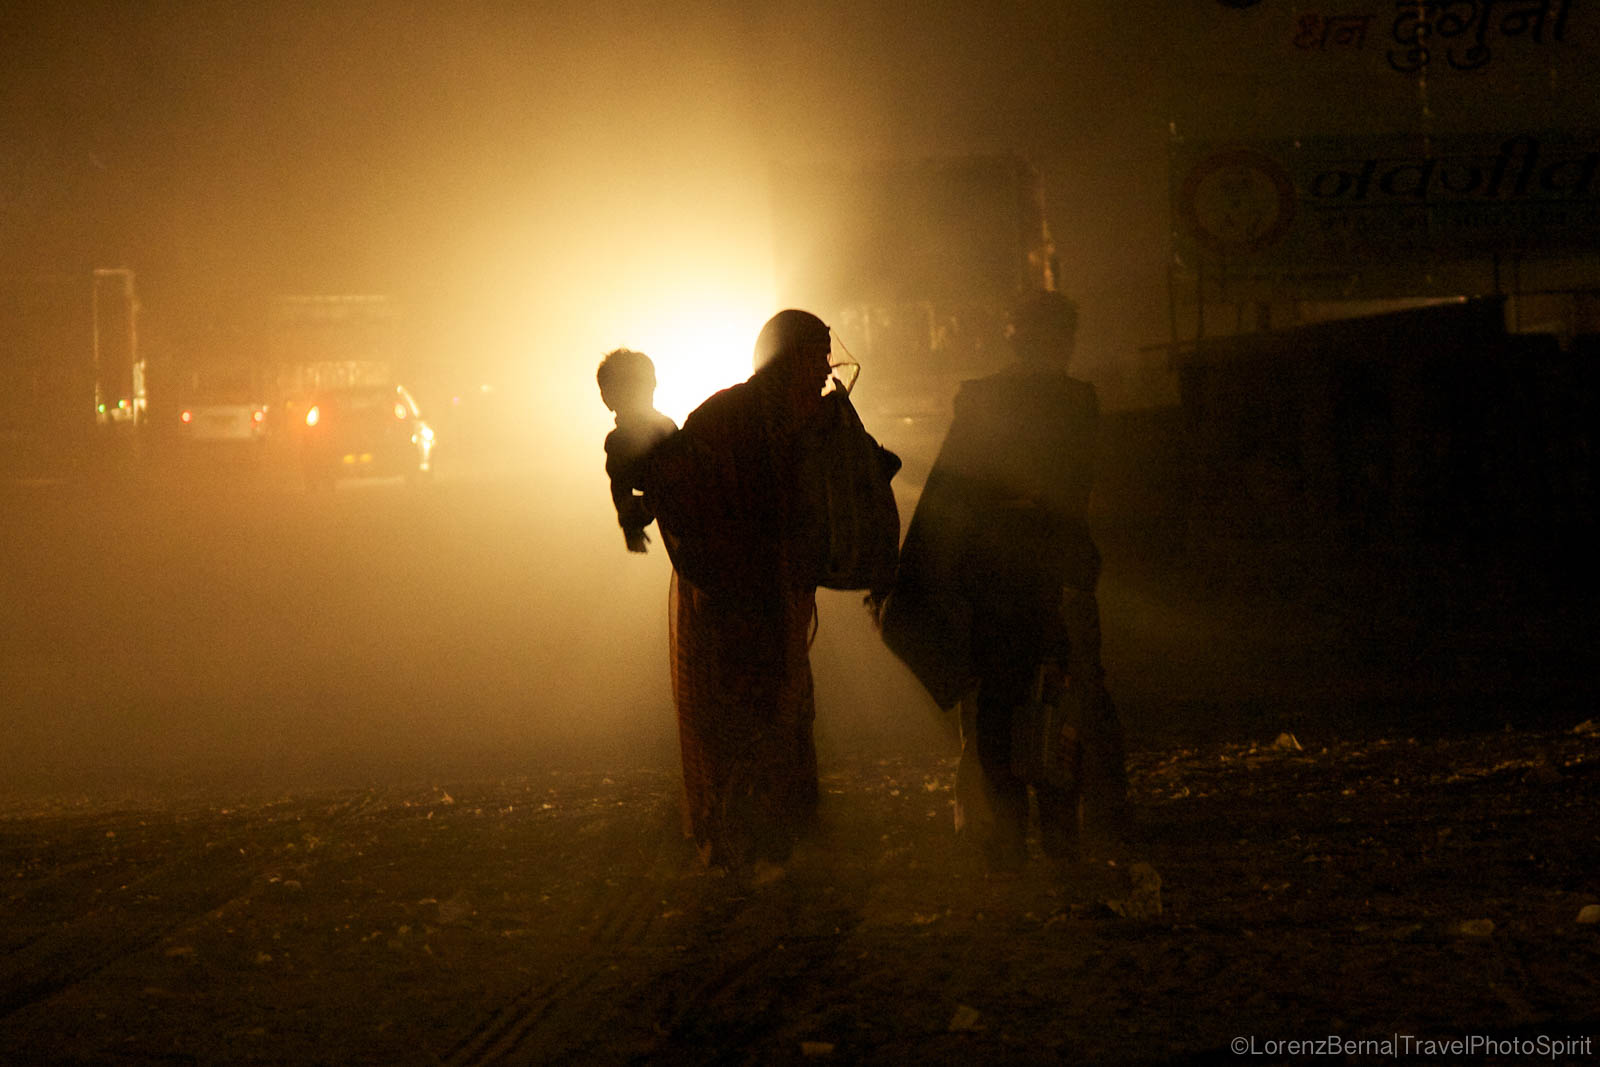 A Mother is walking in the streets of Pushkar by night, holding her child in her arms - A Lorenz Berna Photography of India